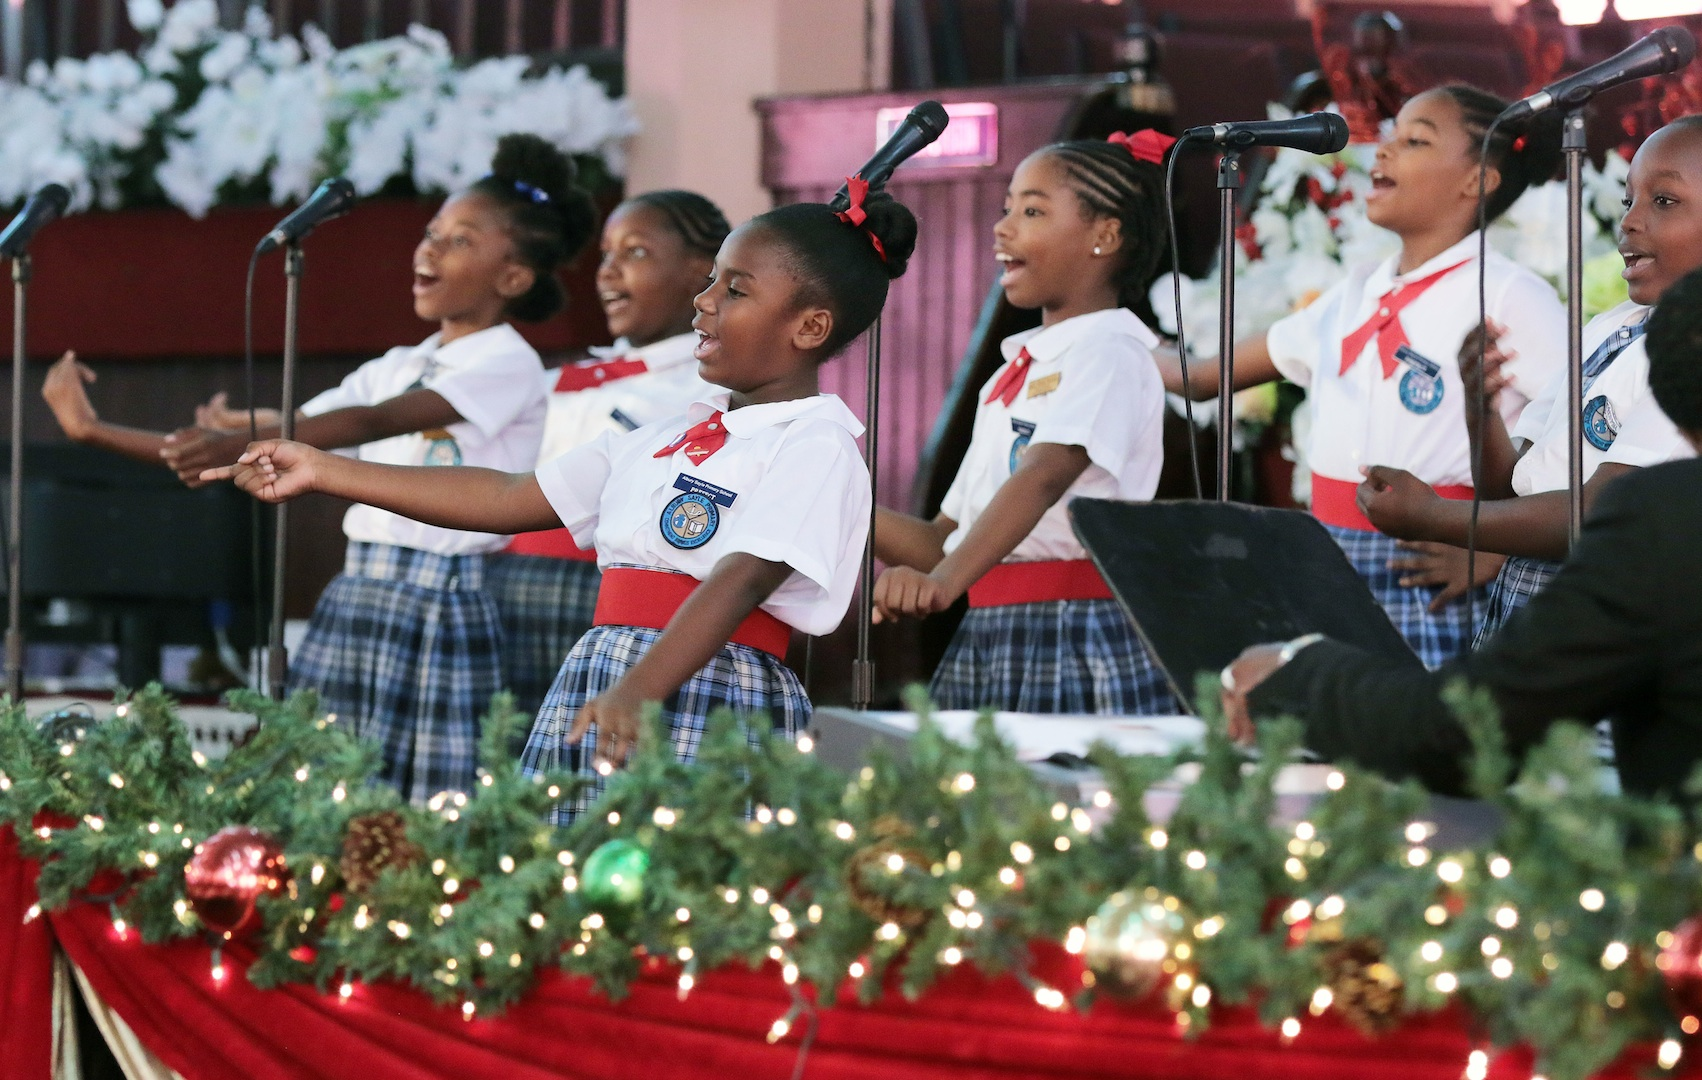 Students' talent on display at Festival of Carols